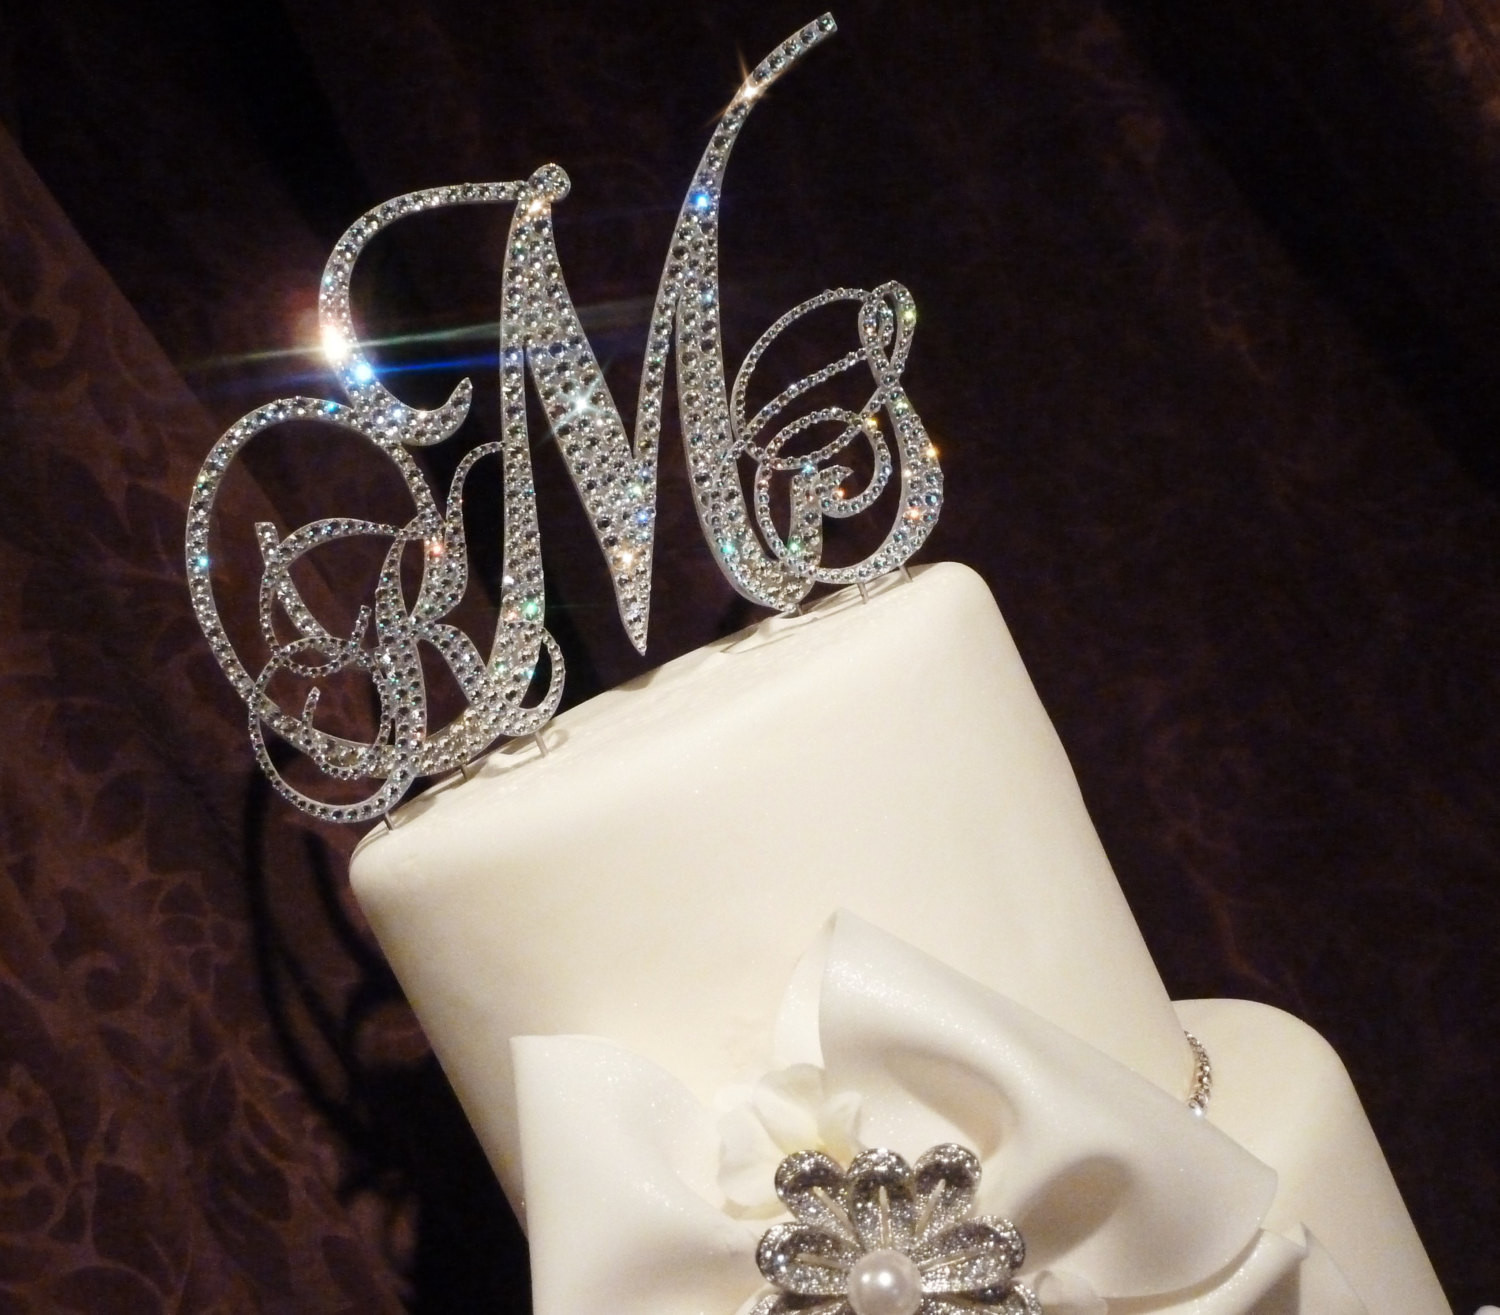 Initial Cake Toppers For Wedding Cakes  Monogram Wedding Cake Toppers Ideas MARGUSRIGA Baby Party